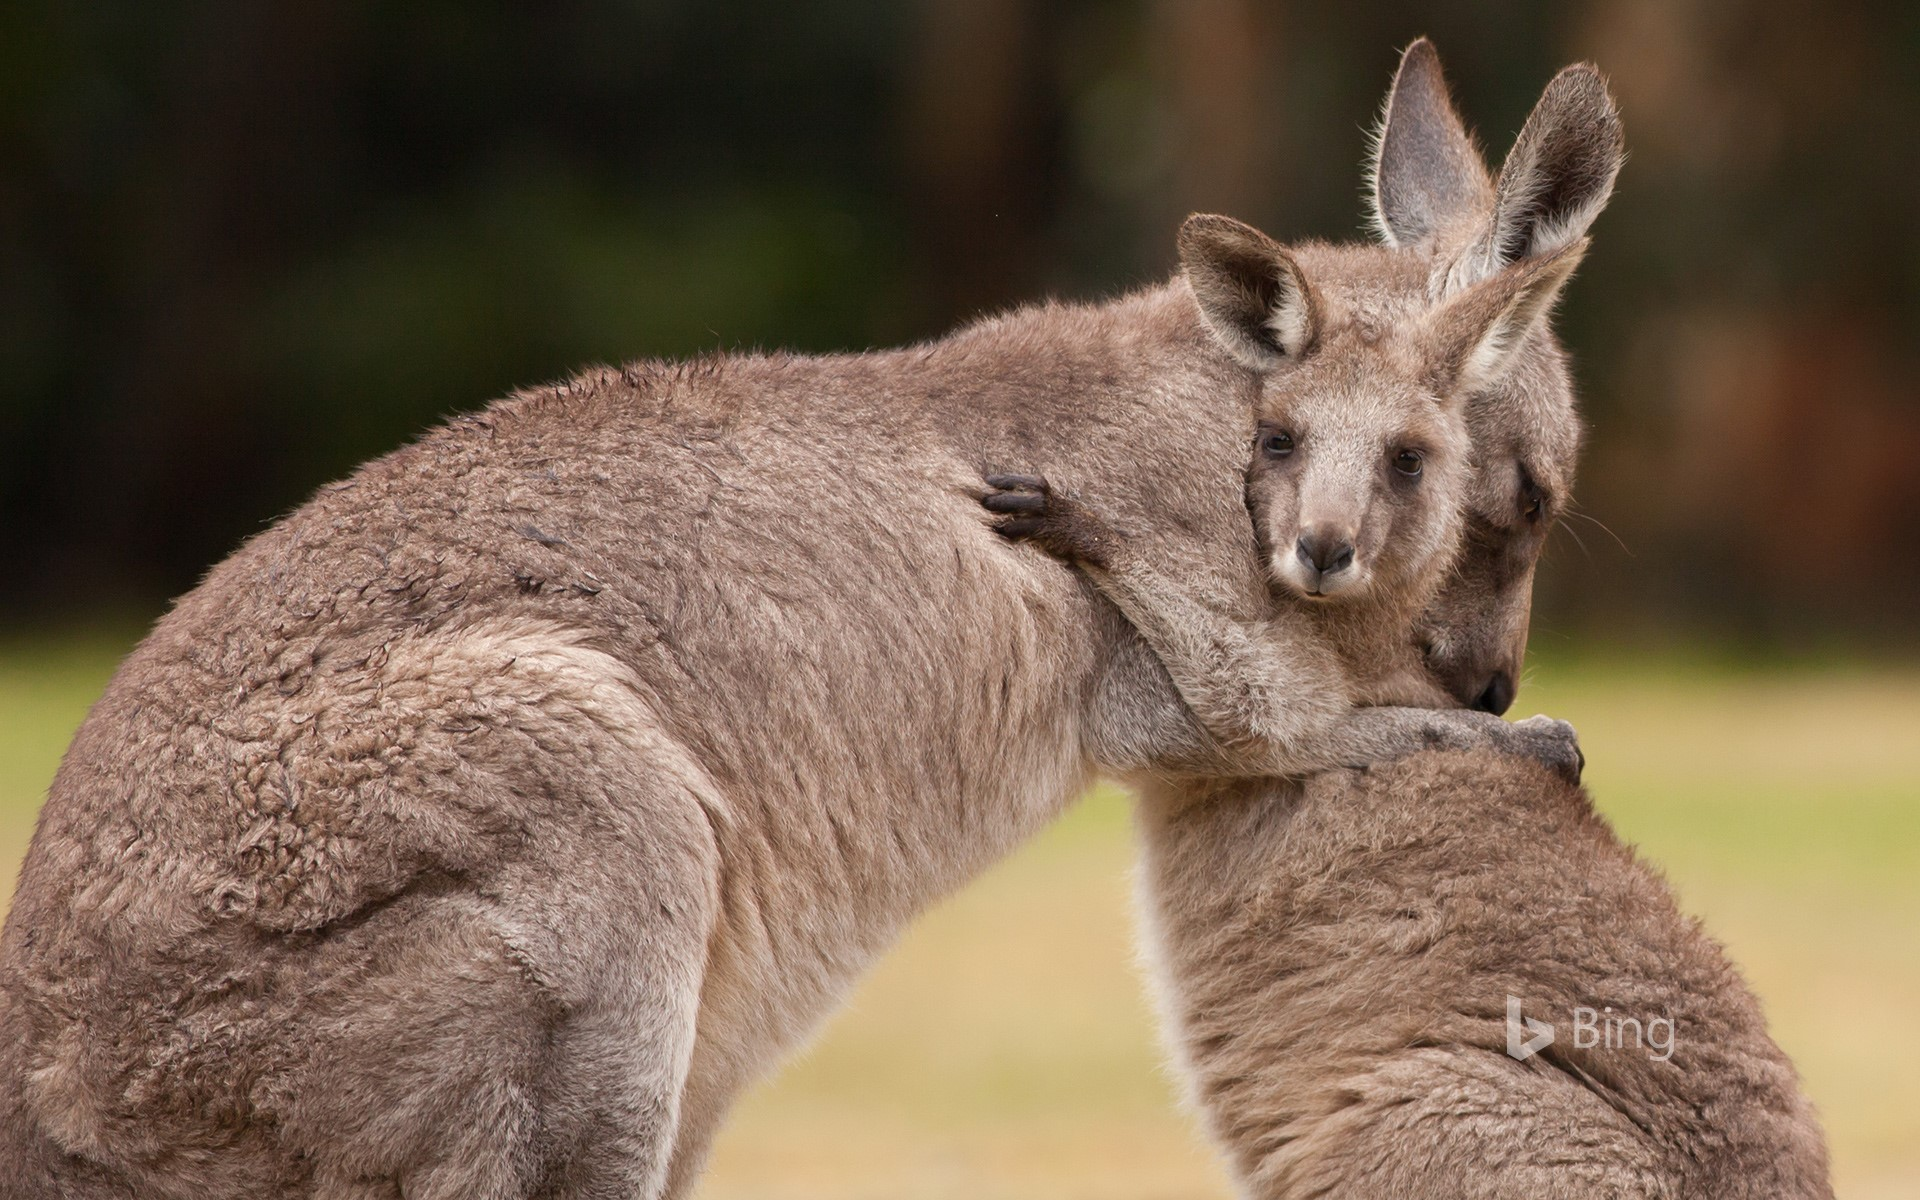 Mother and baby kangaroos hugging (© Belle Ciezak/Shutterstock)